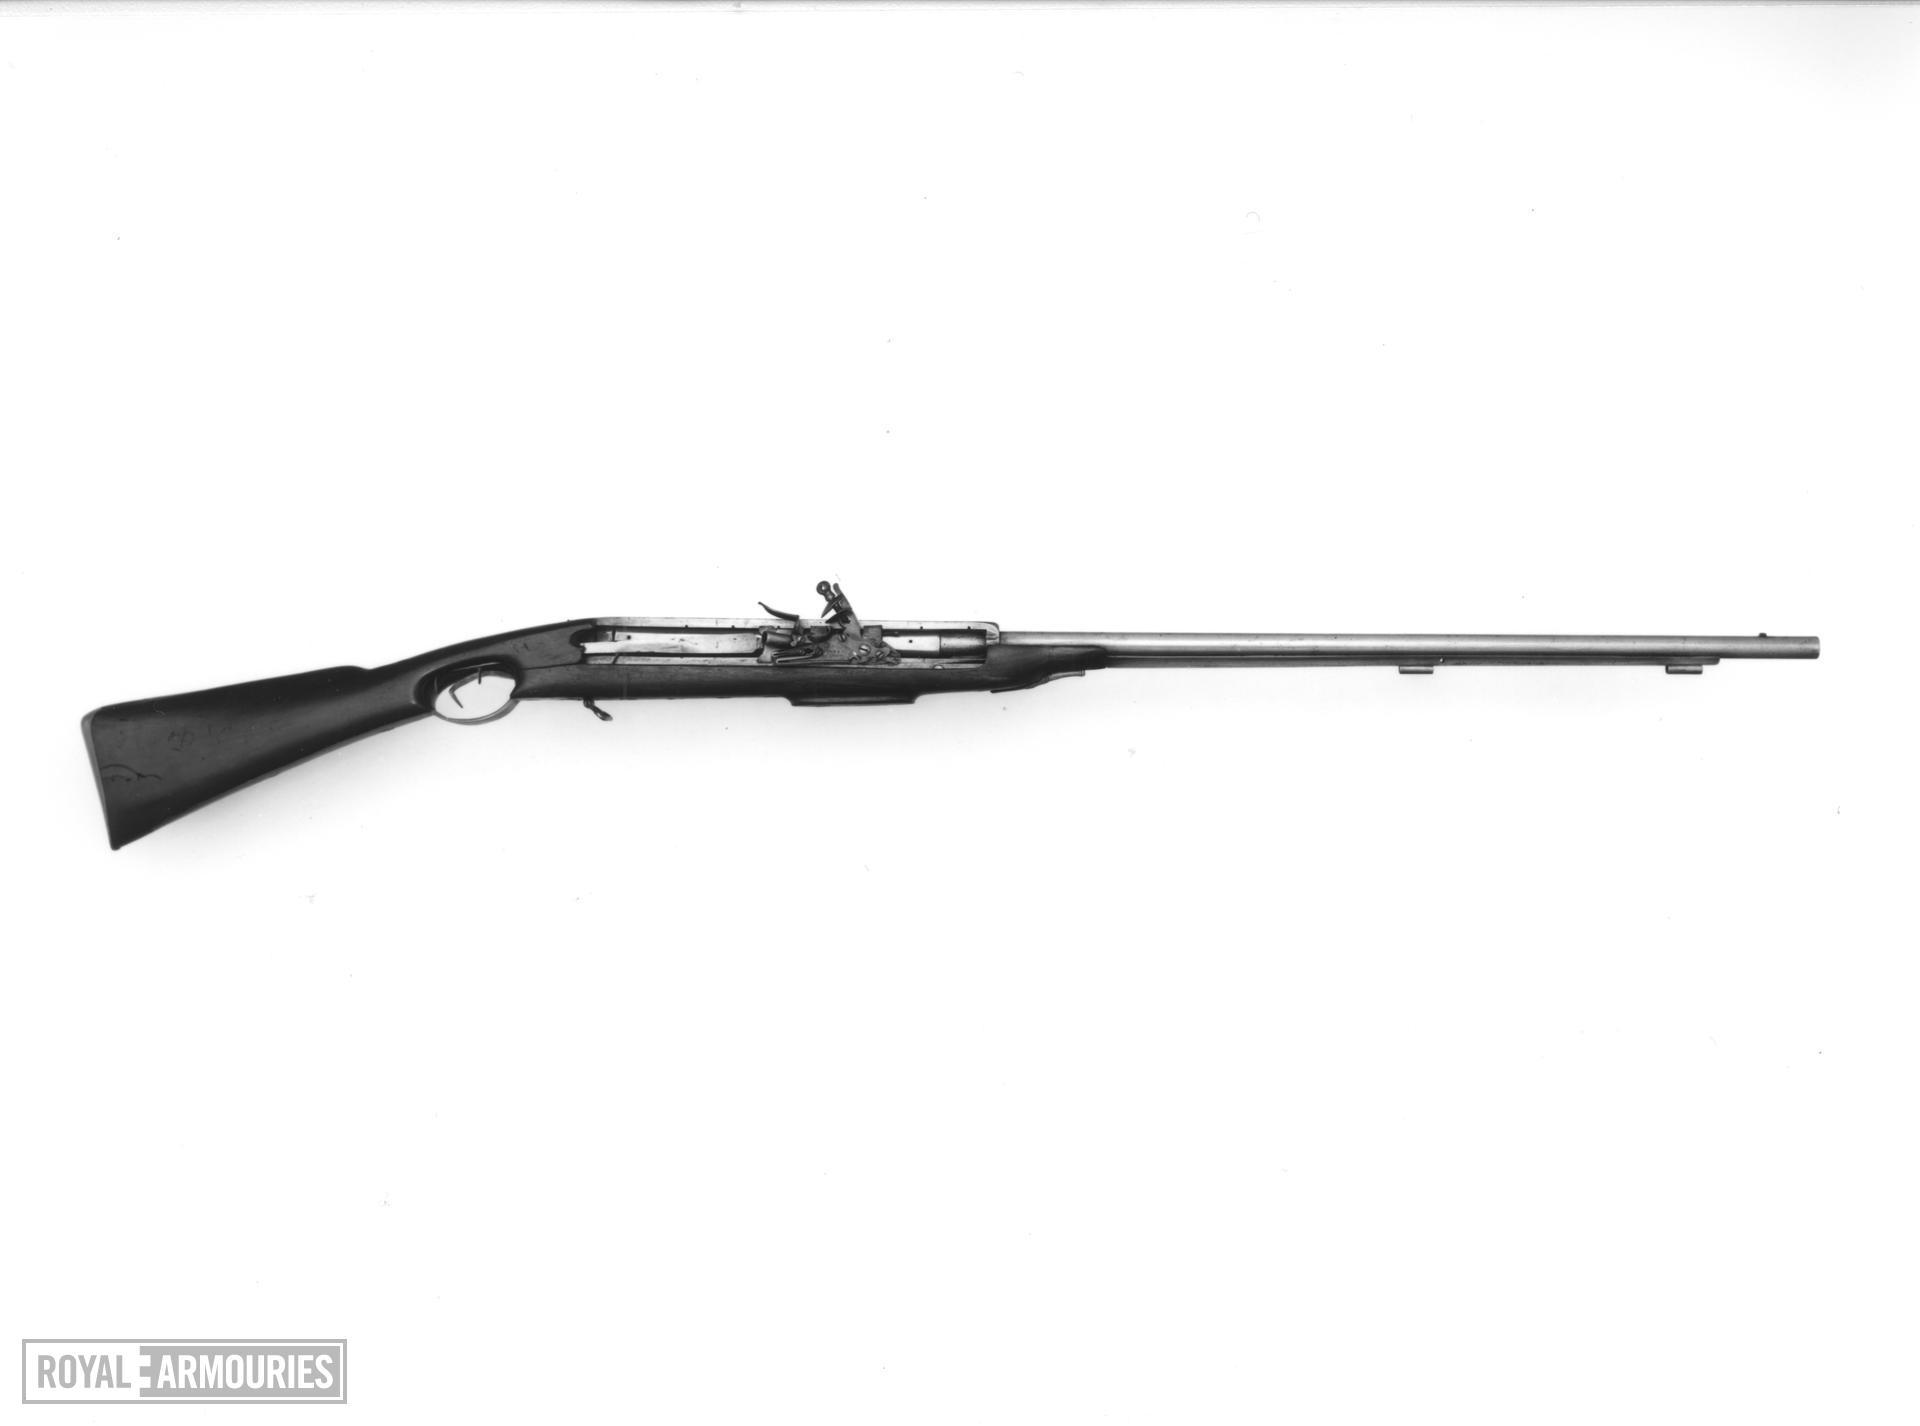 Flintlock breech-loading superimposed military musket - By Jover and Belton